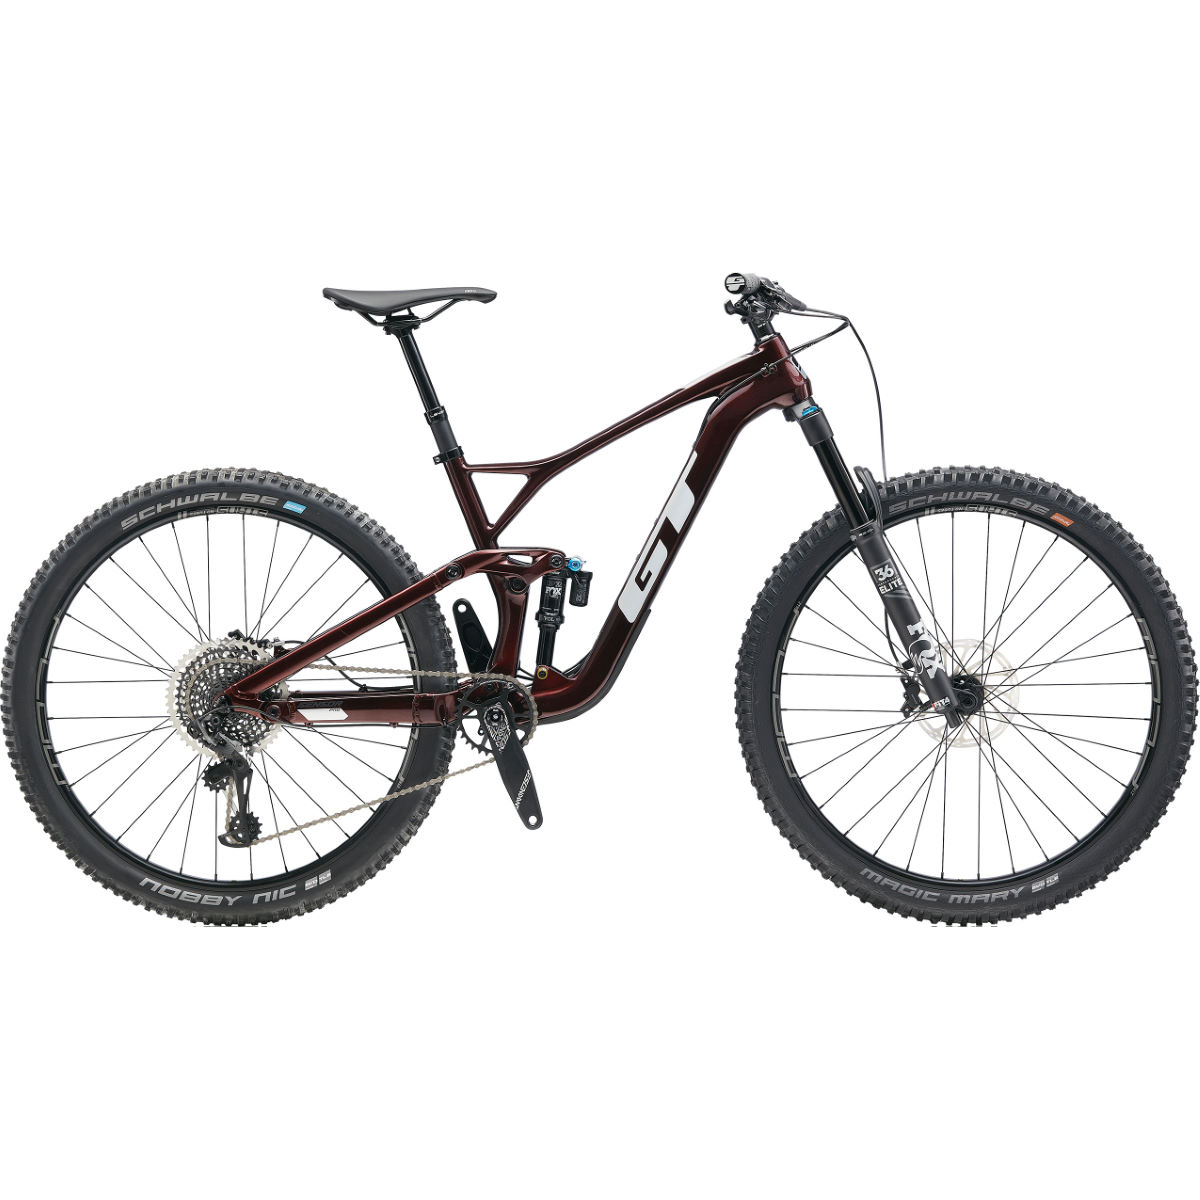 GT GT Sensor Carbon Pro Bike (2020)   Full Suspension Mountain Bikes